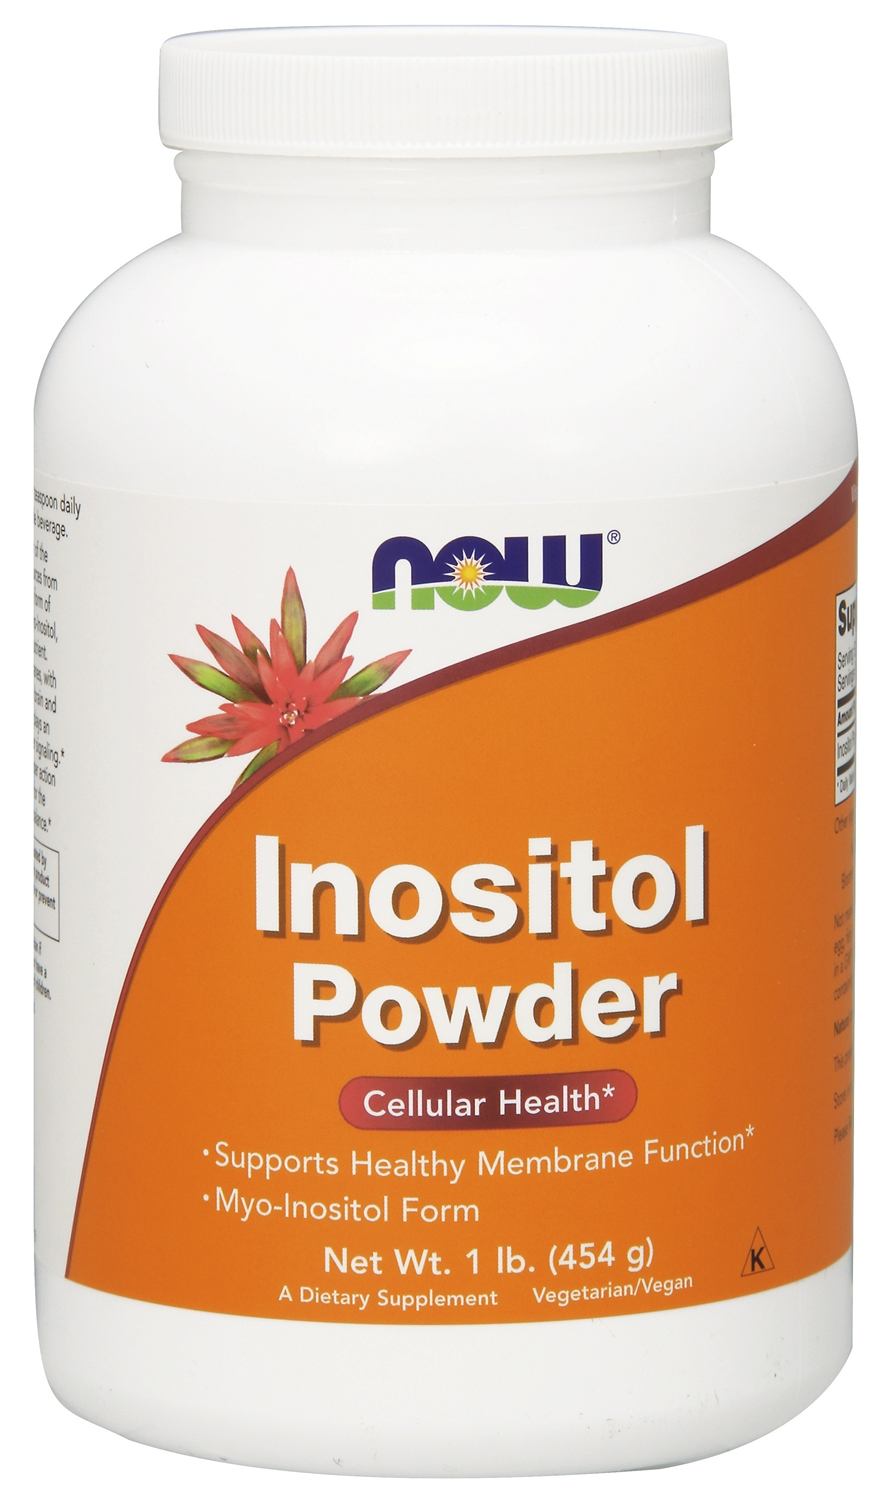 Inositol Powder 1 lb (454 g) by NOW Foods